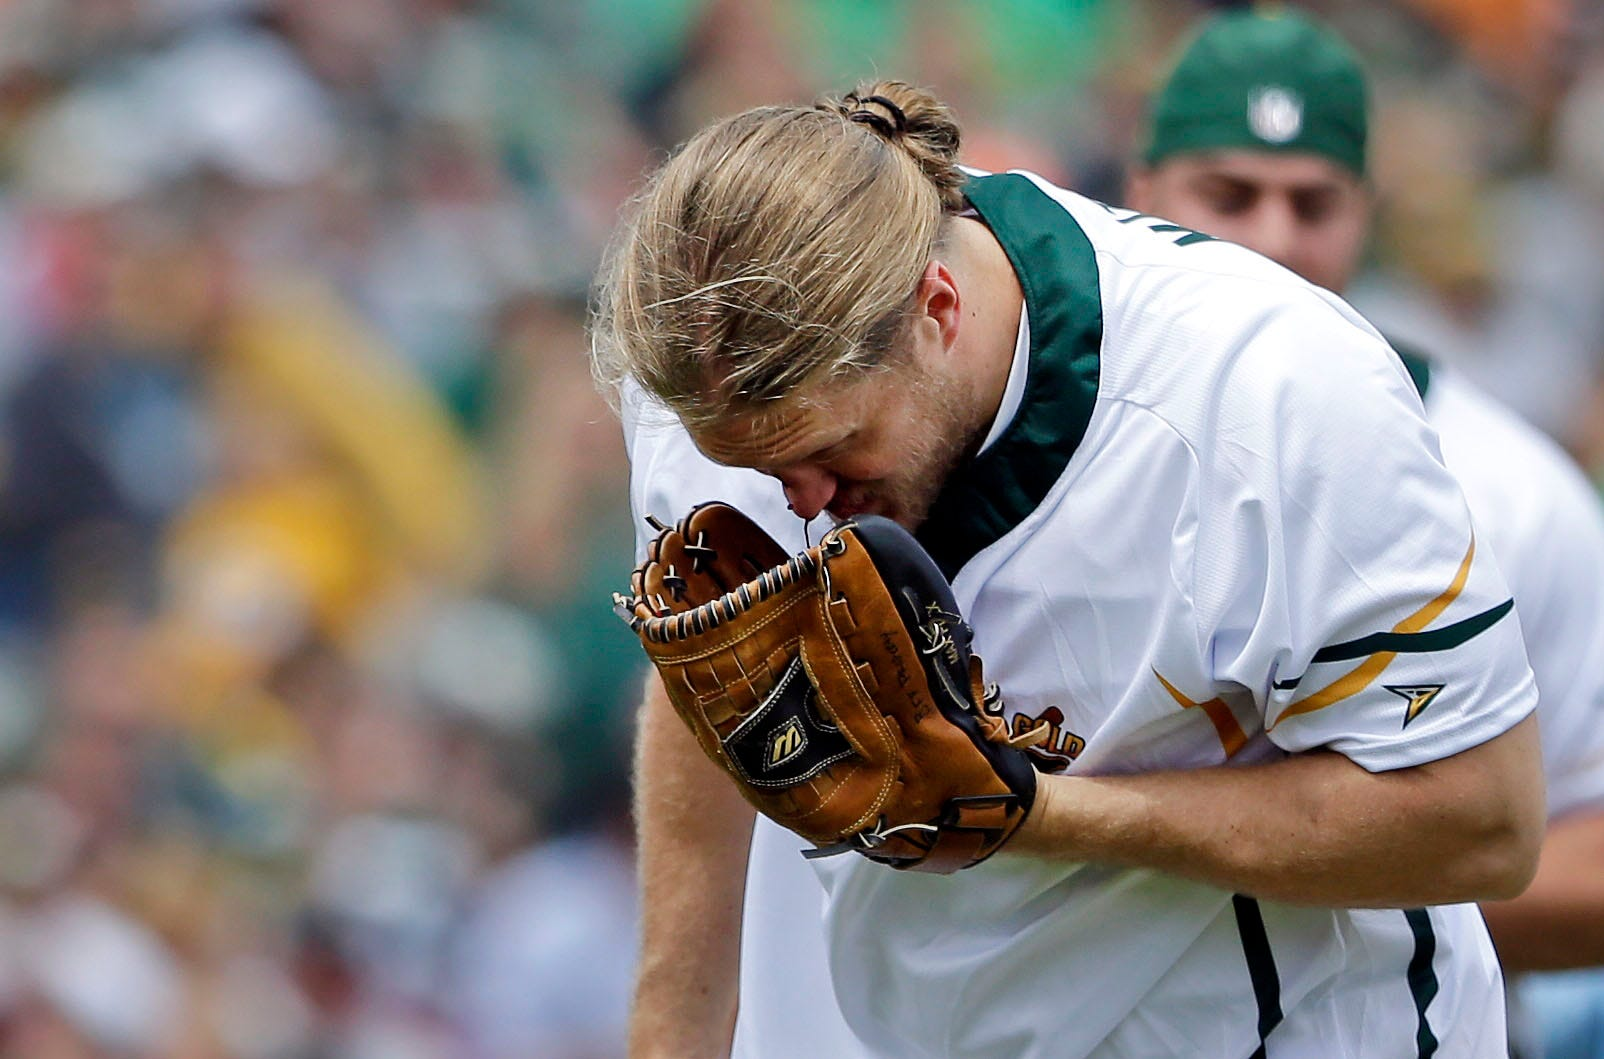 Packers' Clay Matthews breaks nose after being hit by line drive in charity softball game